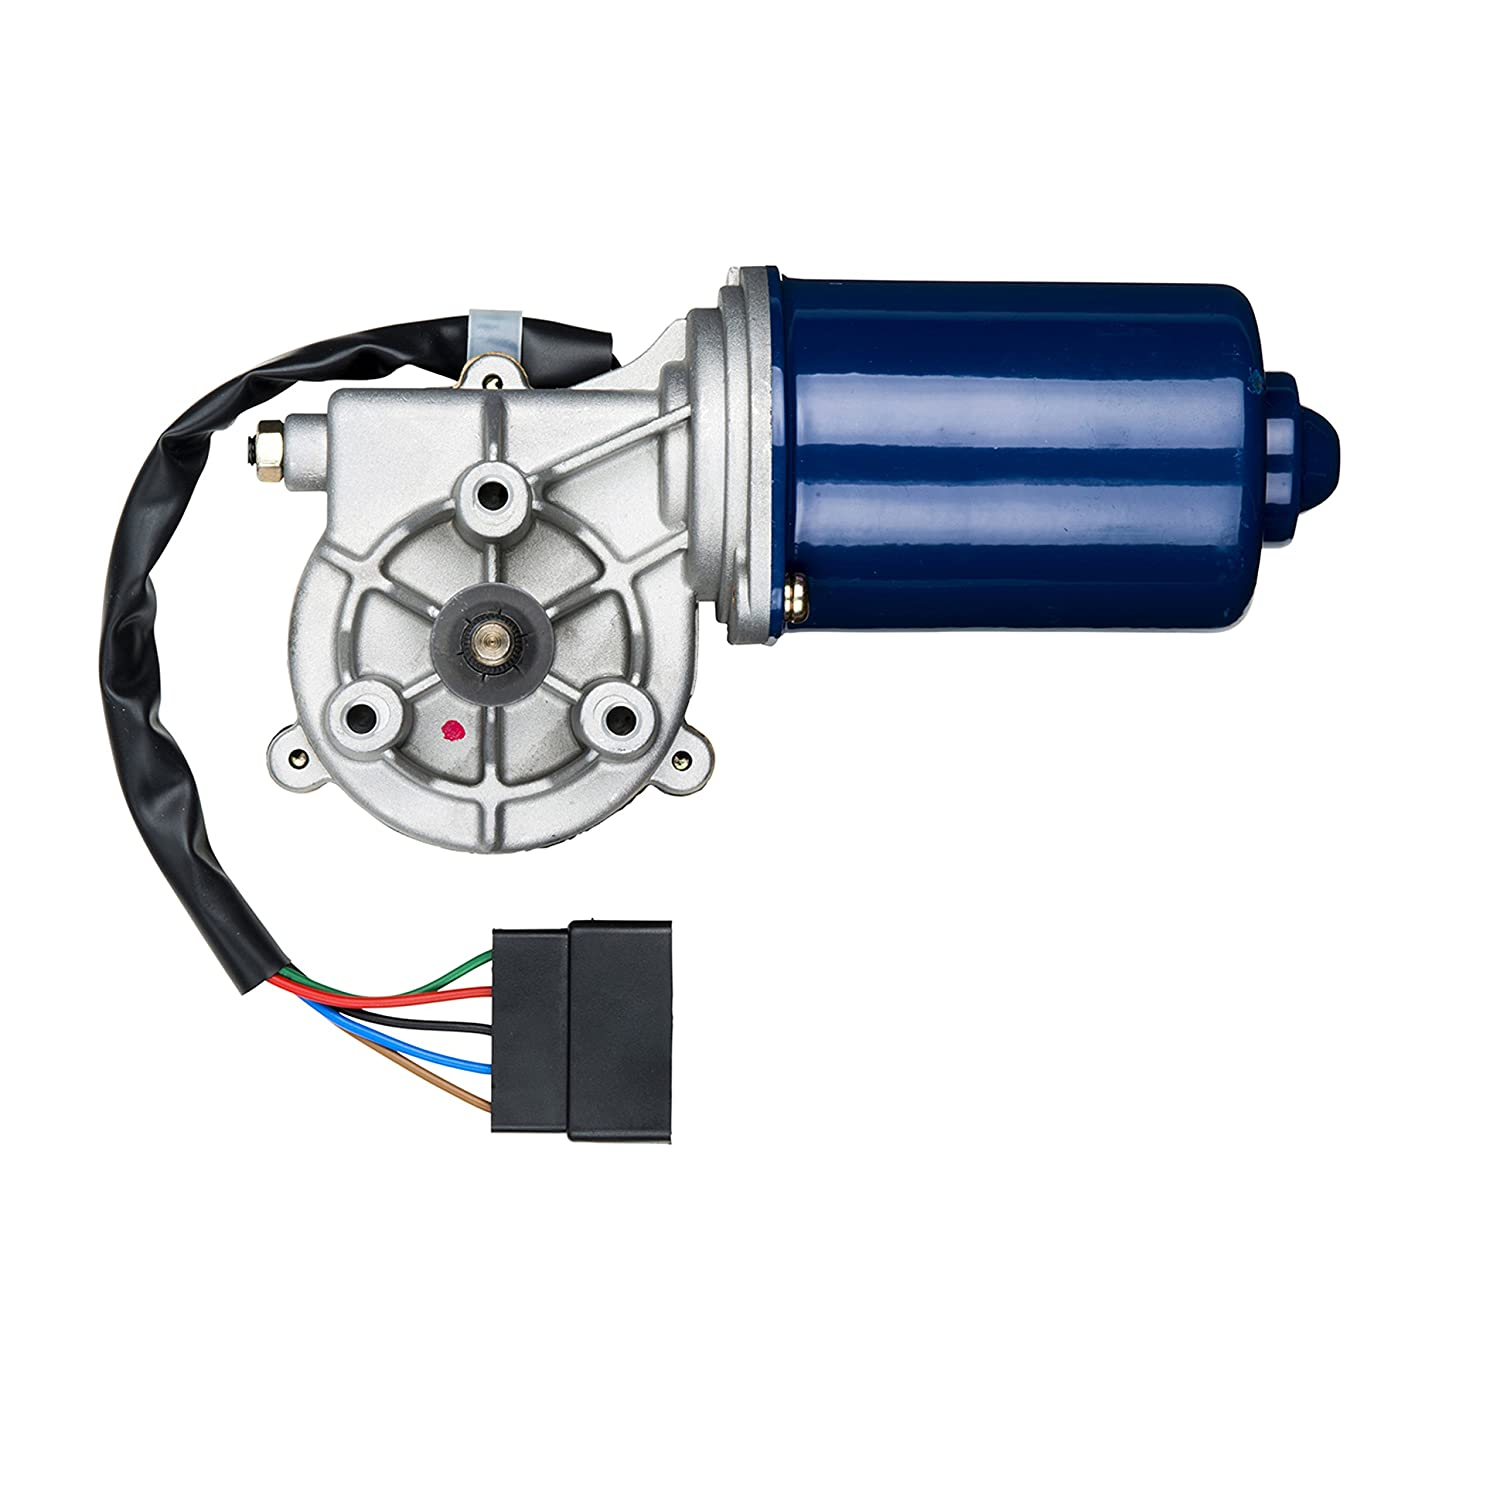 Wexco G138 55nm Wiper Motor